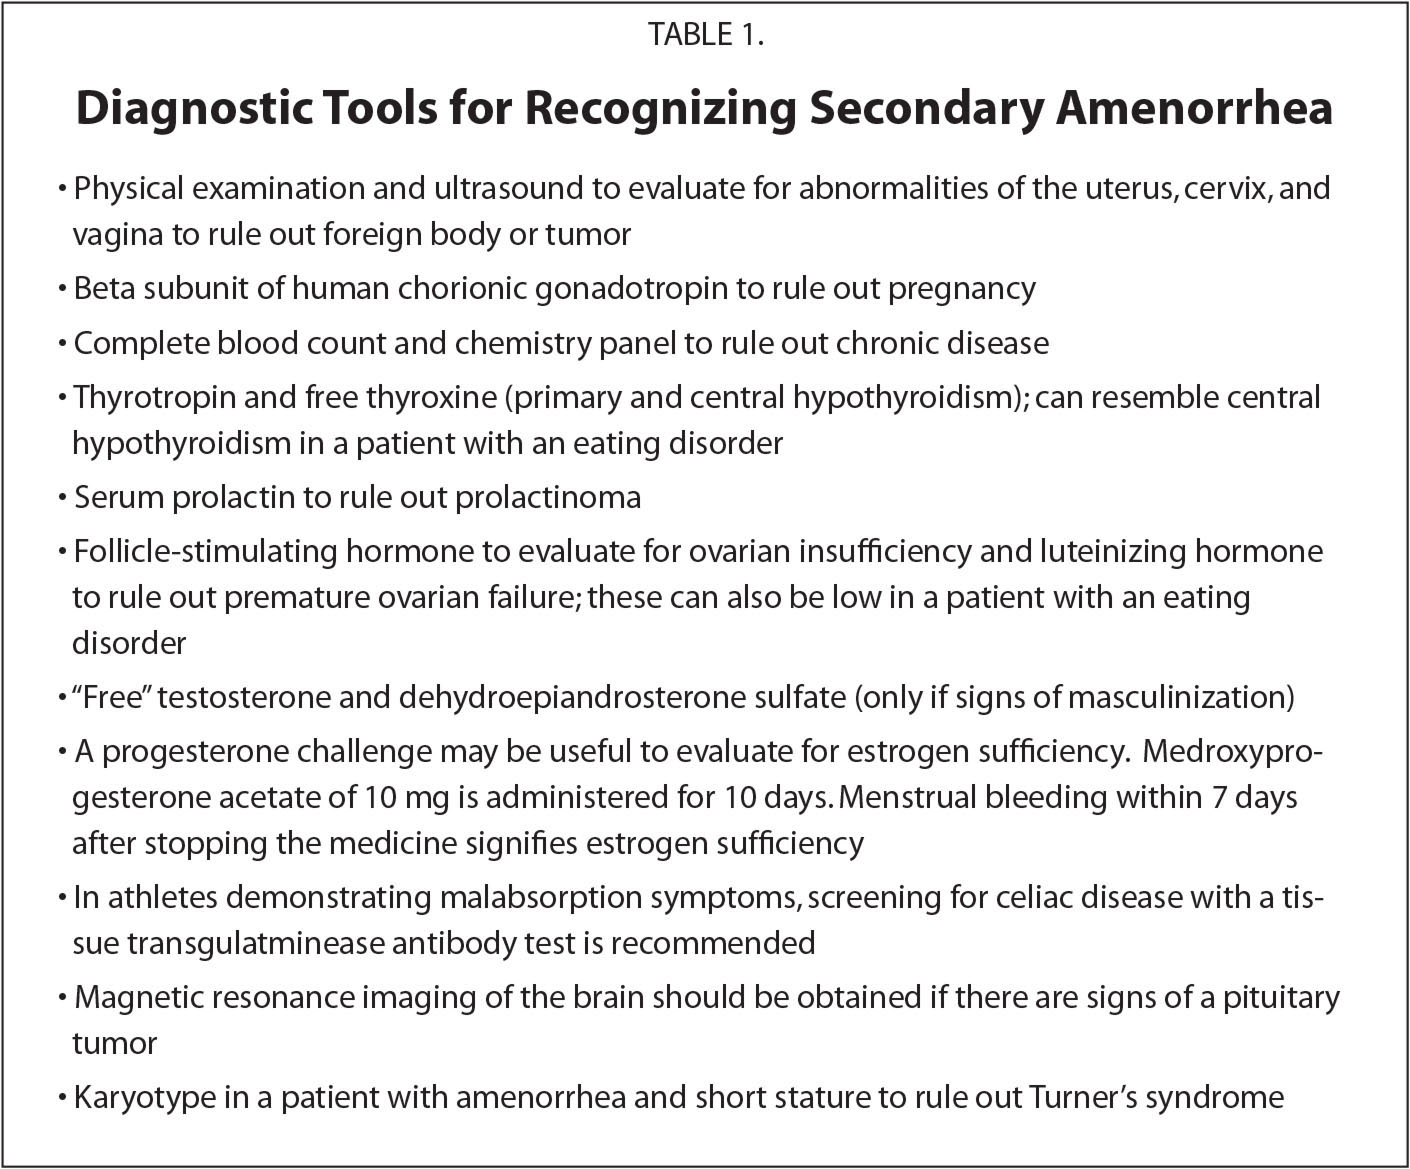 Diagnostic Tools for Recognizing Secondary Amenorrhea